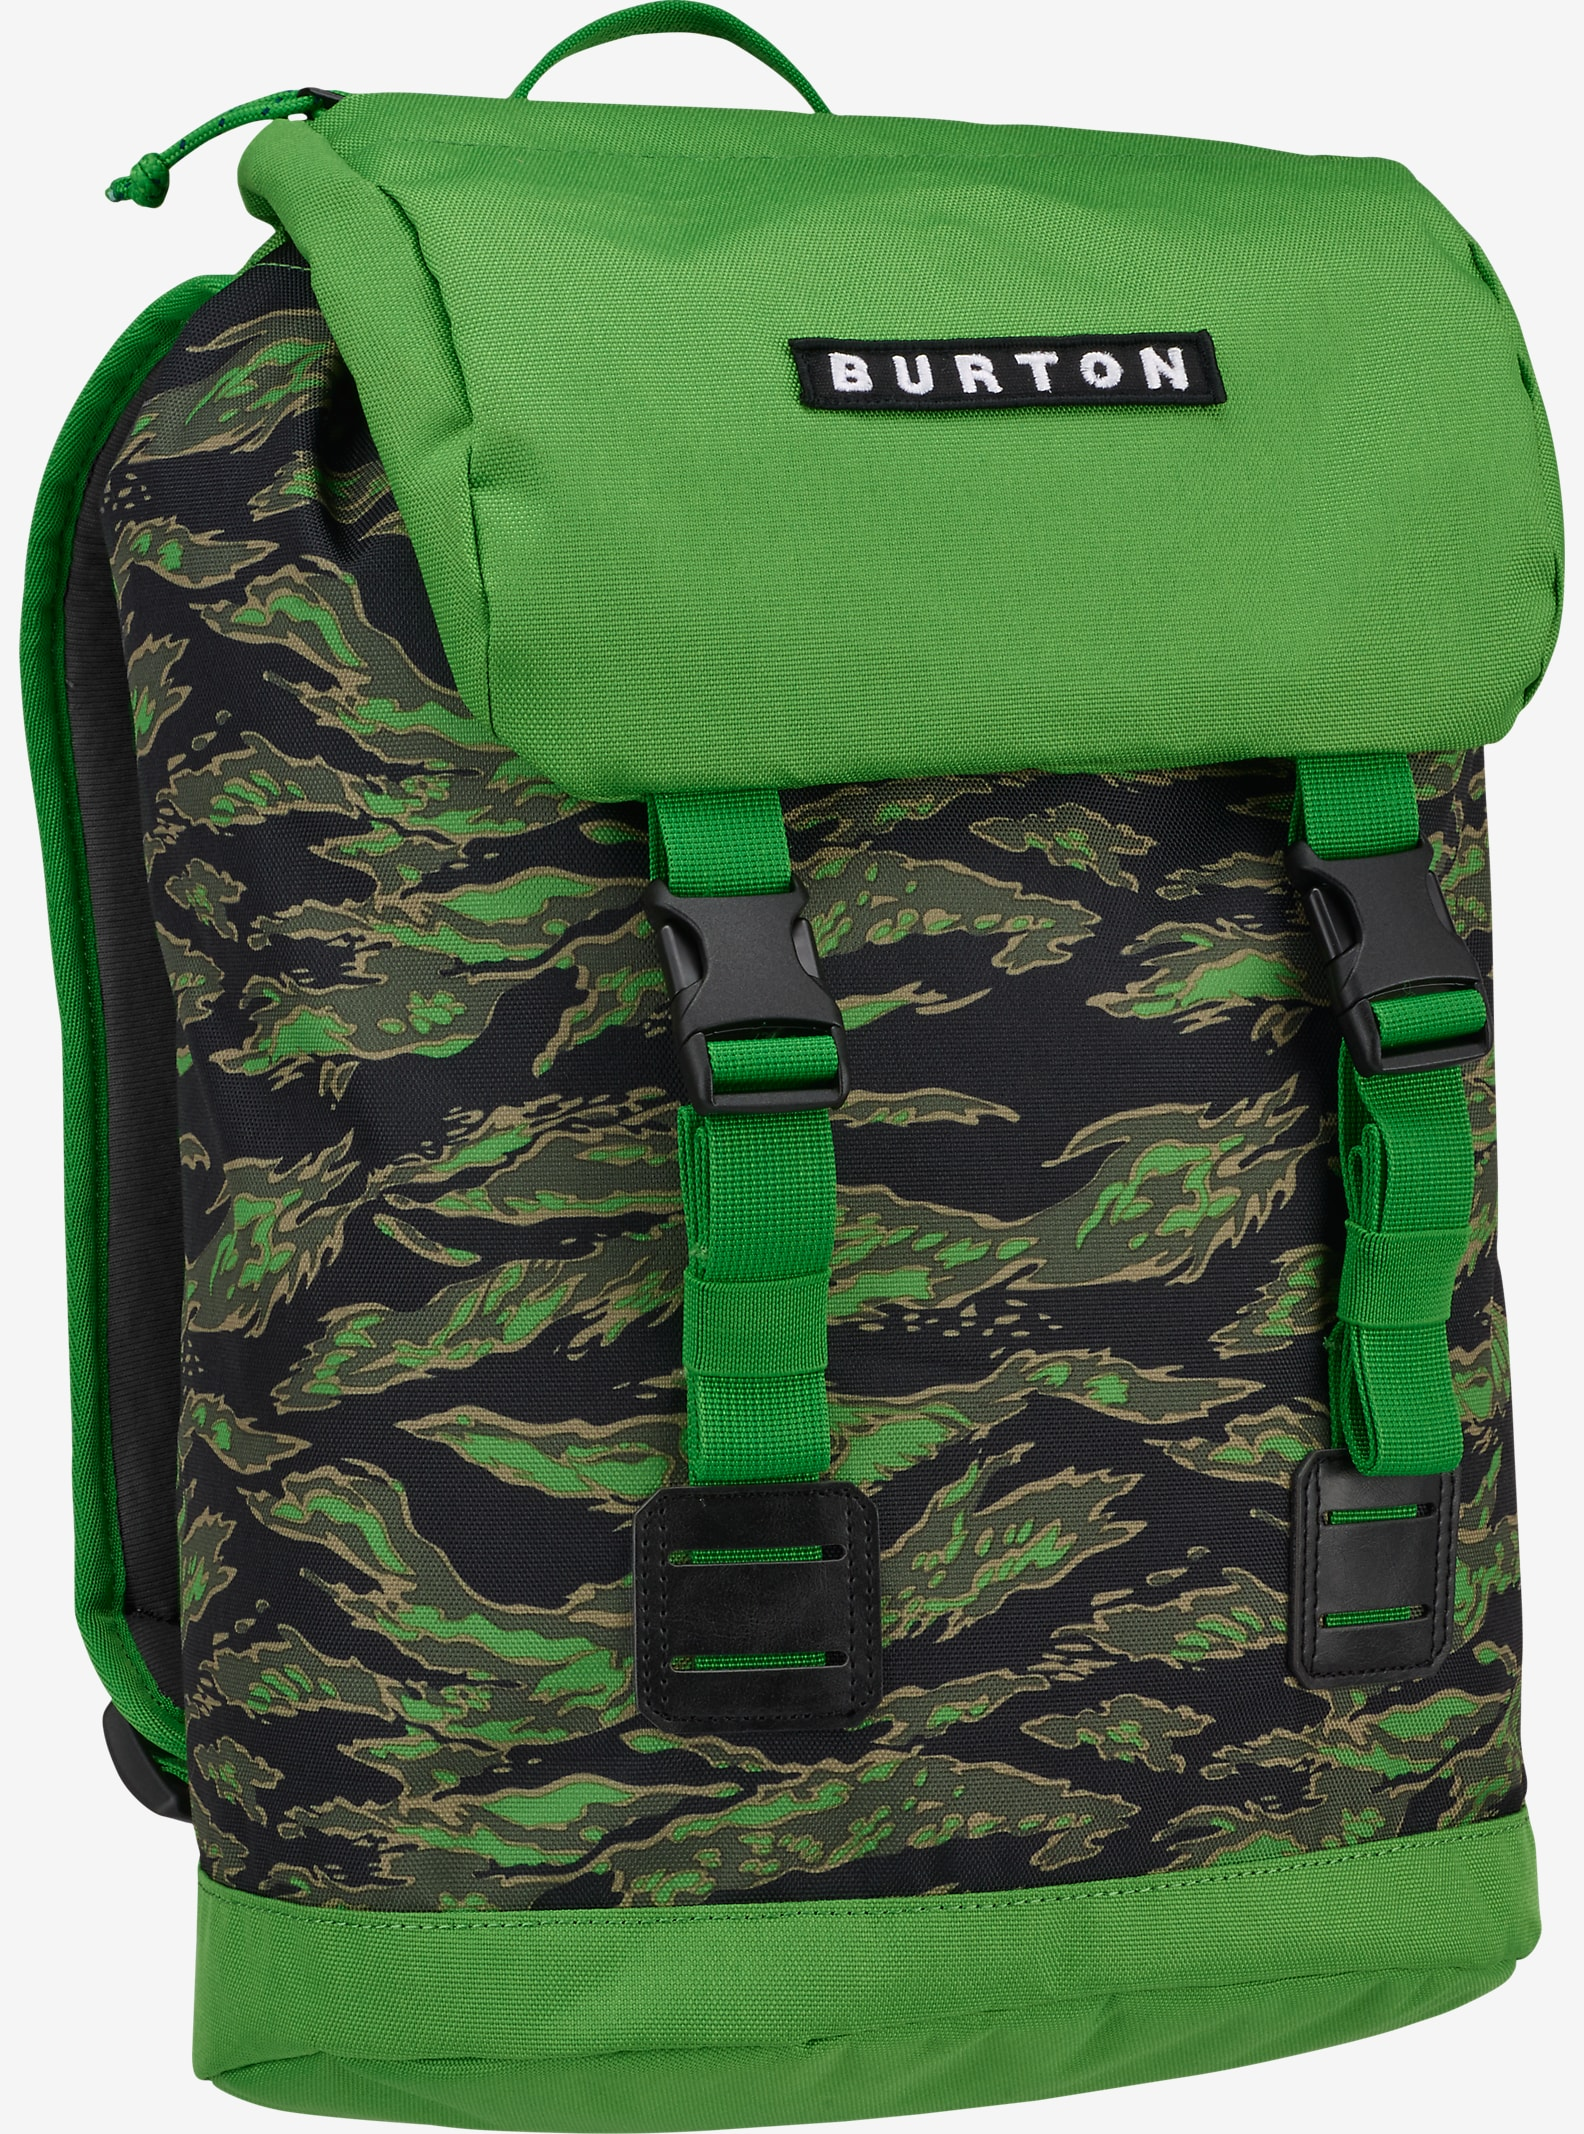 Burton Kids' Tinder Backpack shown in Slime Camo Print